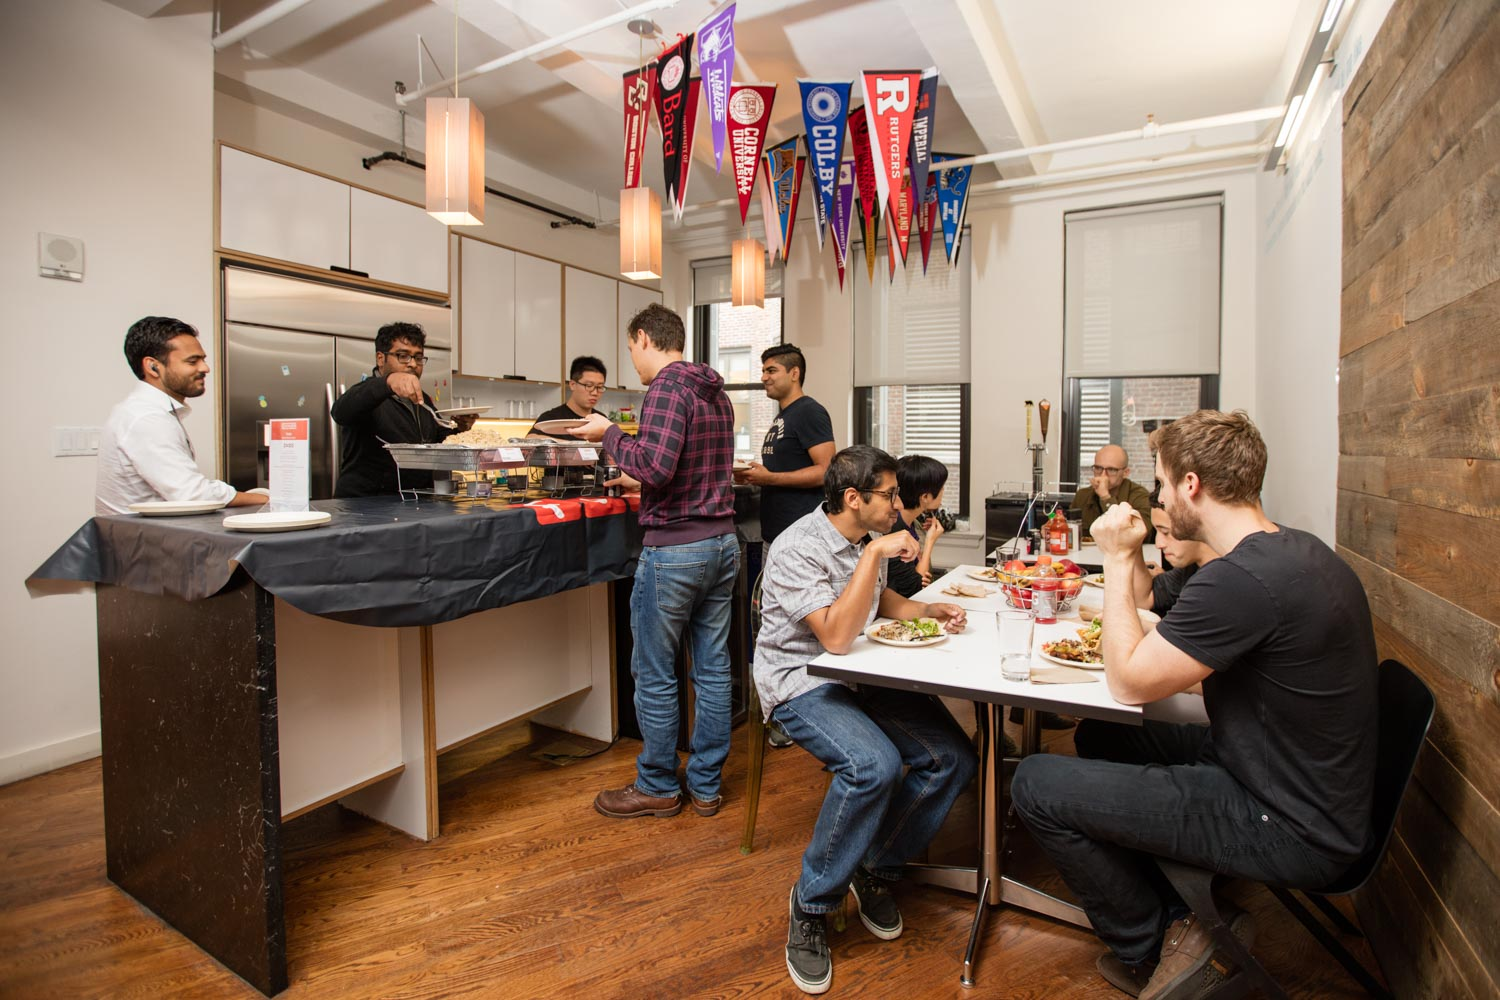 Office Lifestyle - Business & Corporate Lifestyle Photography NYC Tech Team Eating Lunch